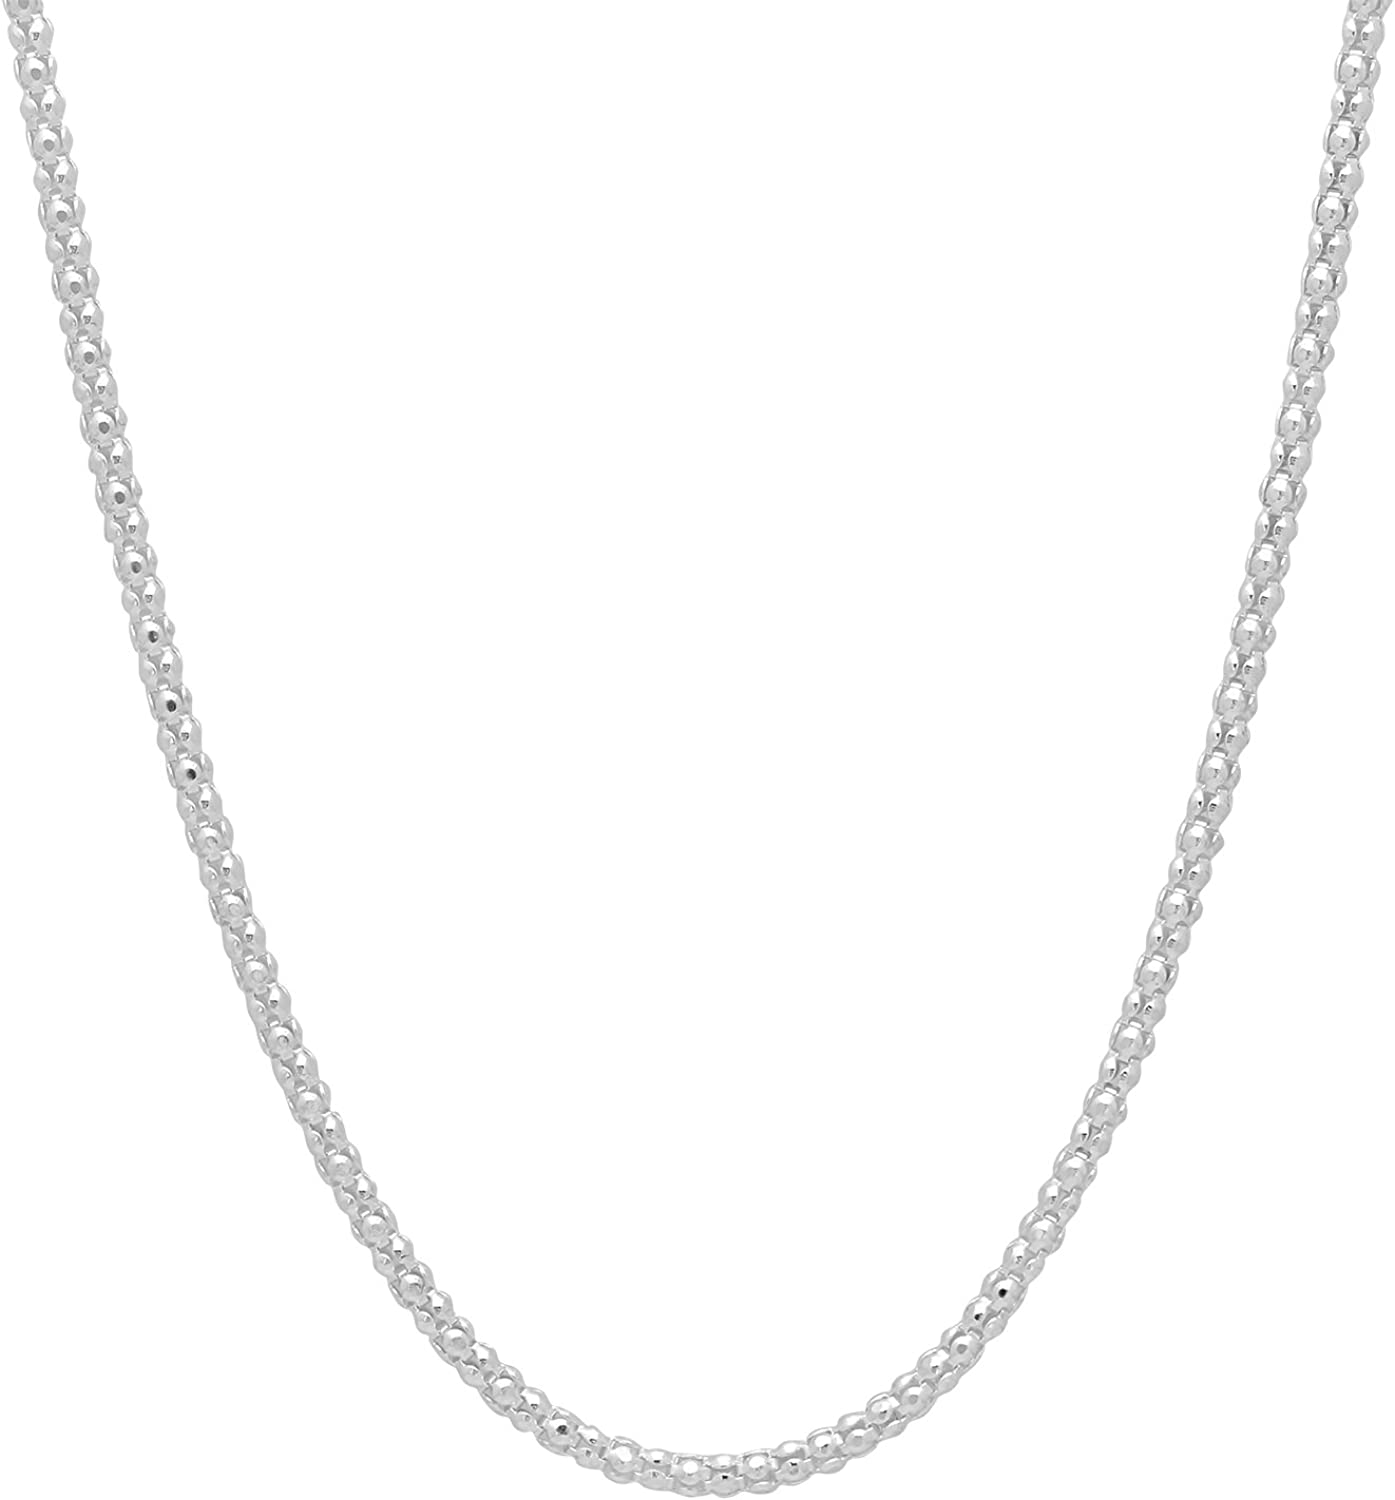 2.5mm High-Polished .925 Sterling Silver (Nickel Free) Round Popcorn Chain Necklace, 15'-30'